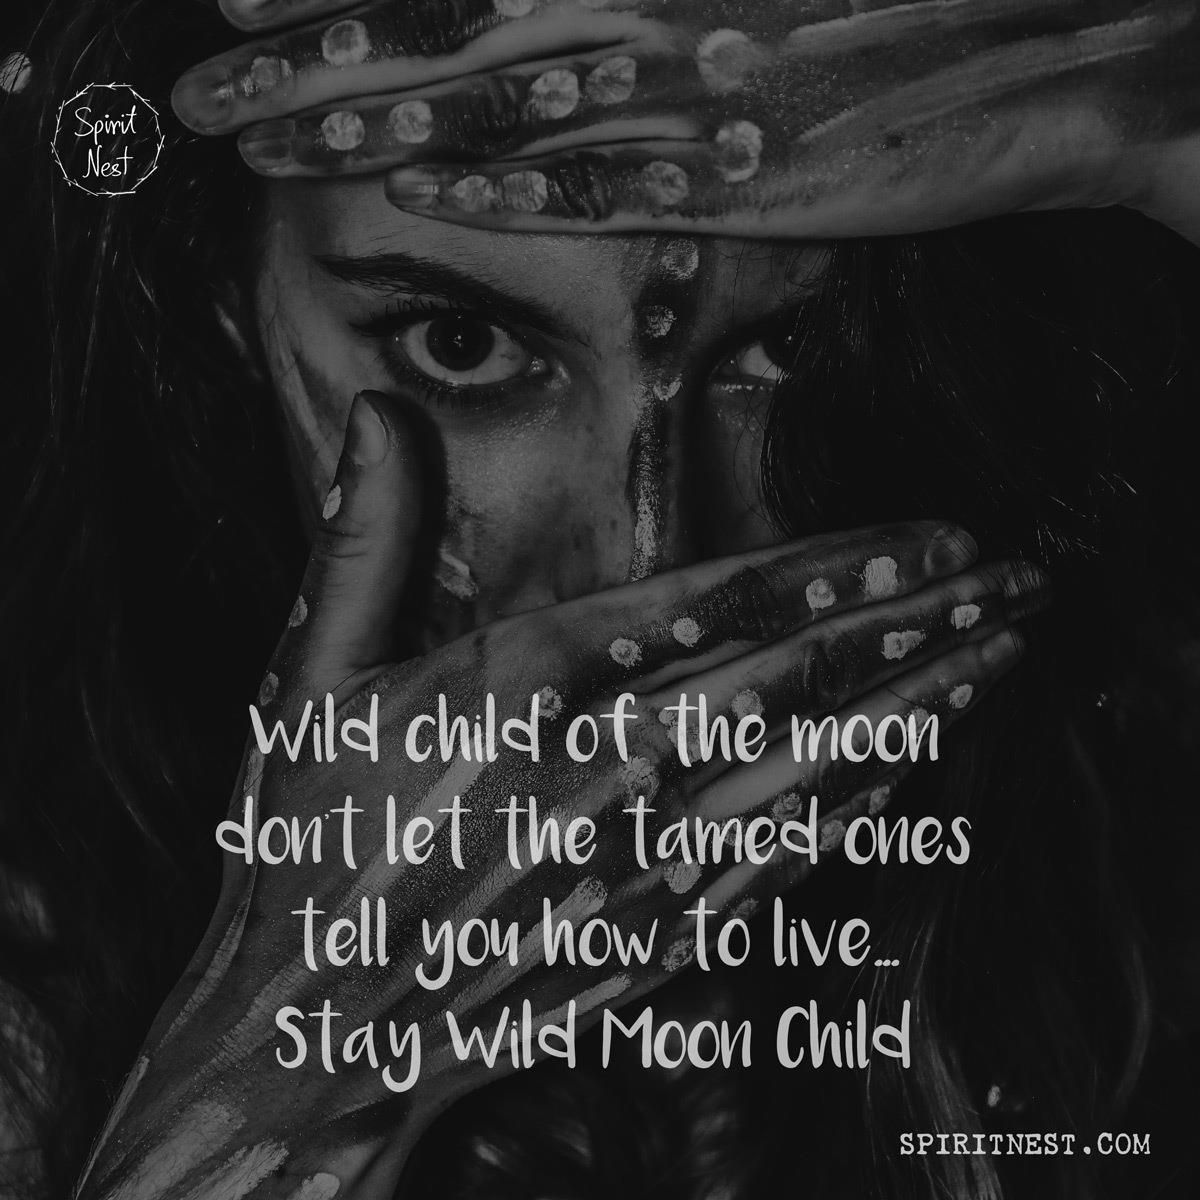 e69bd57c50fe8 Wild child of the moon